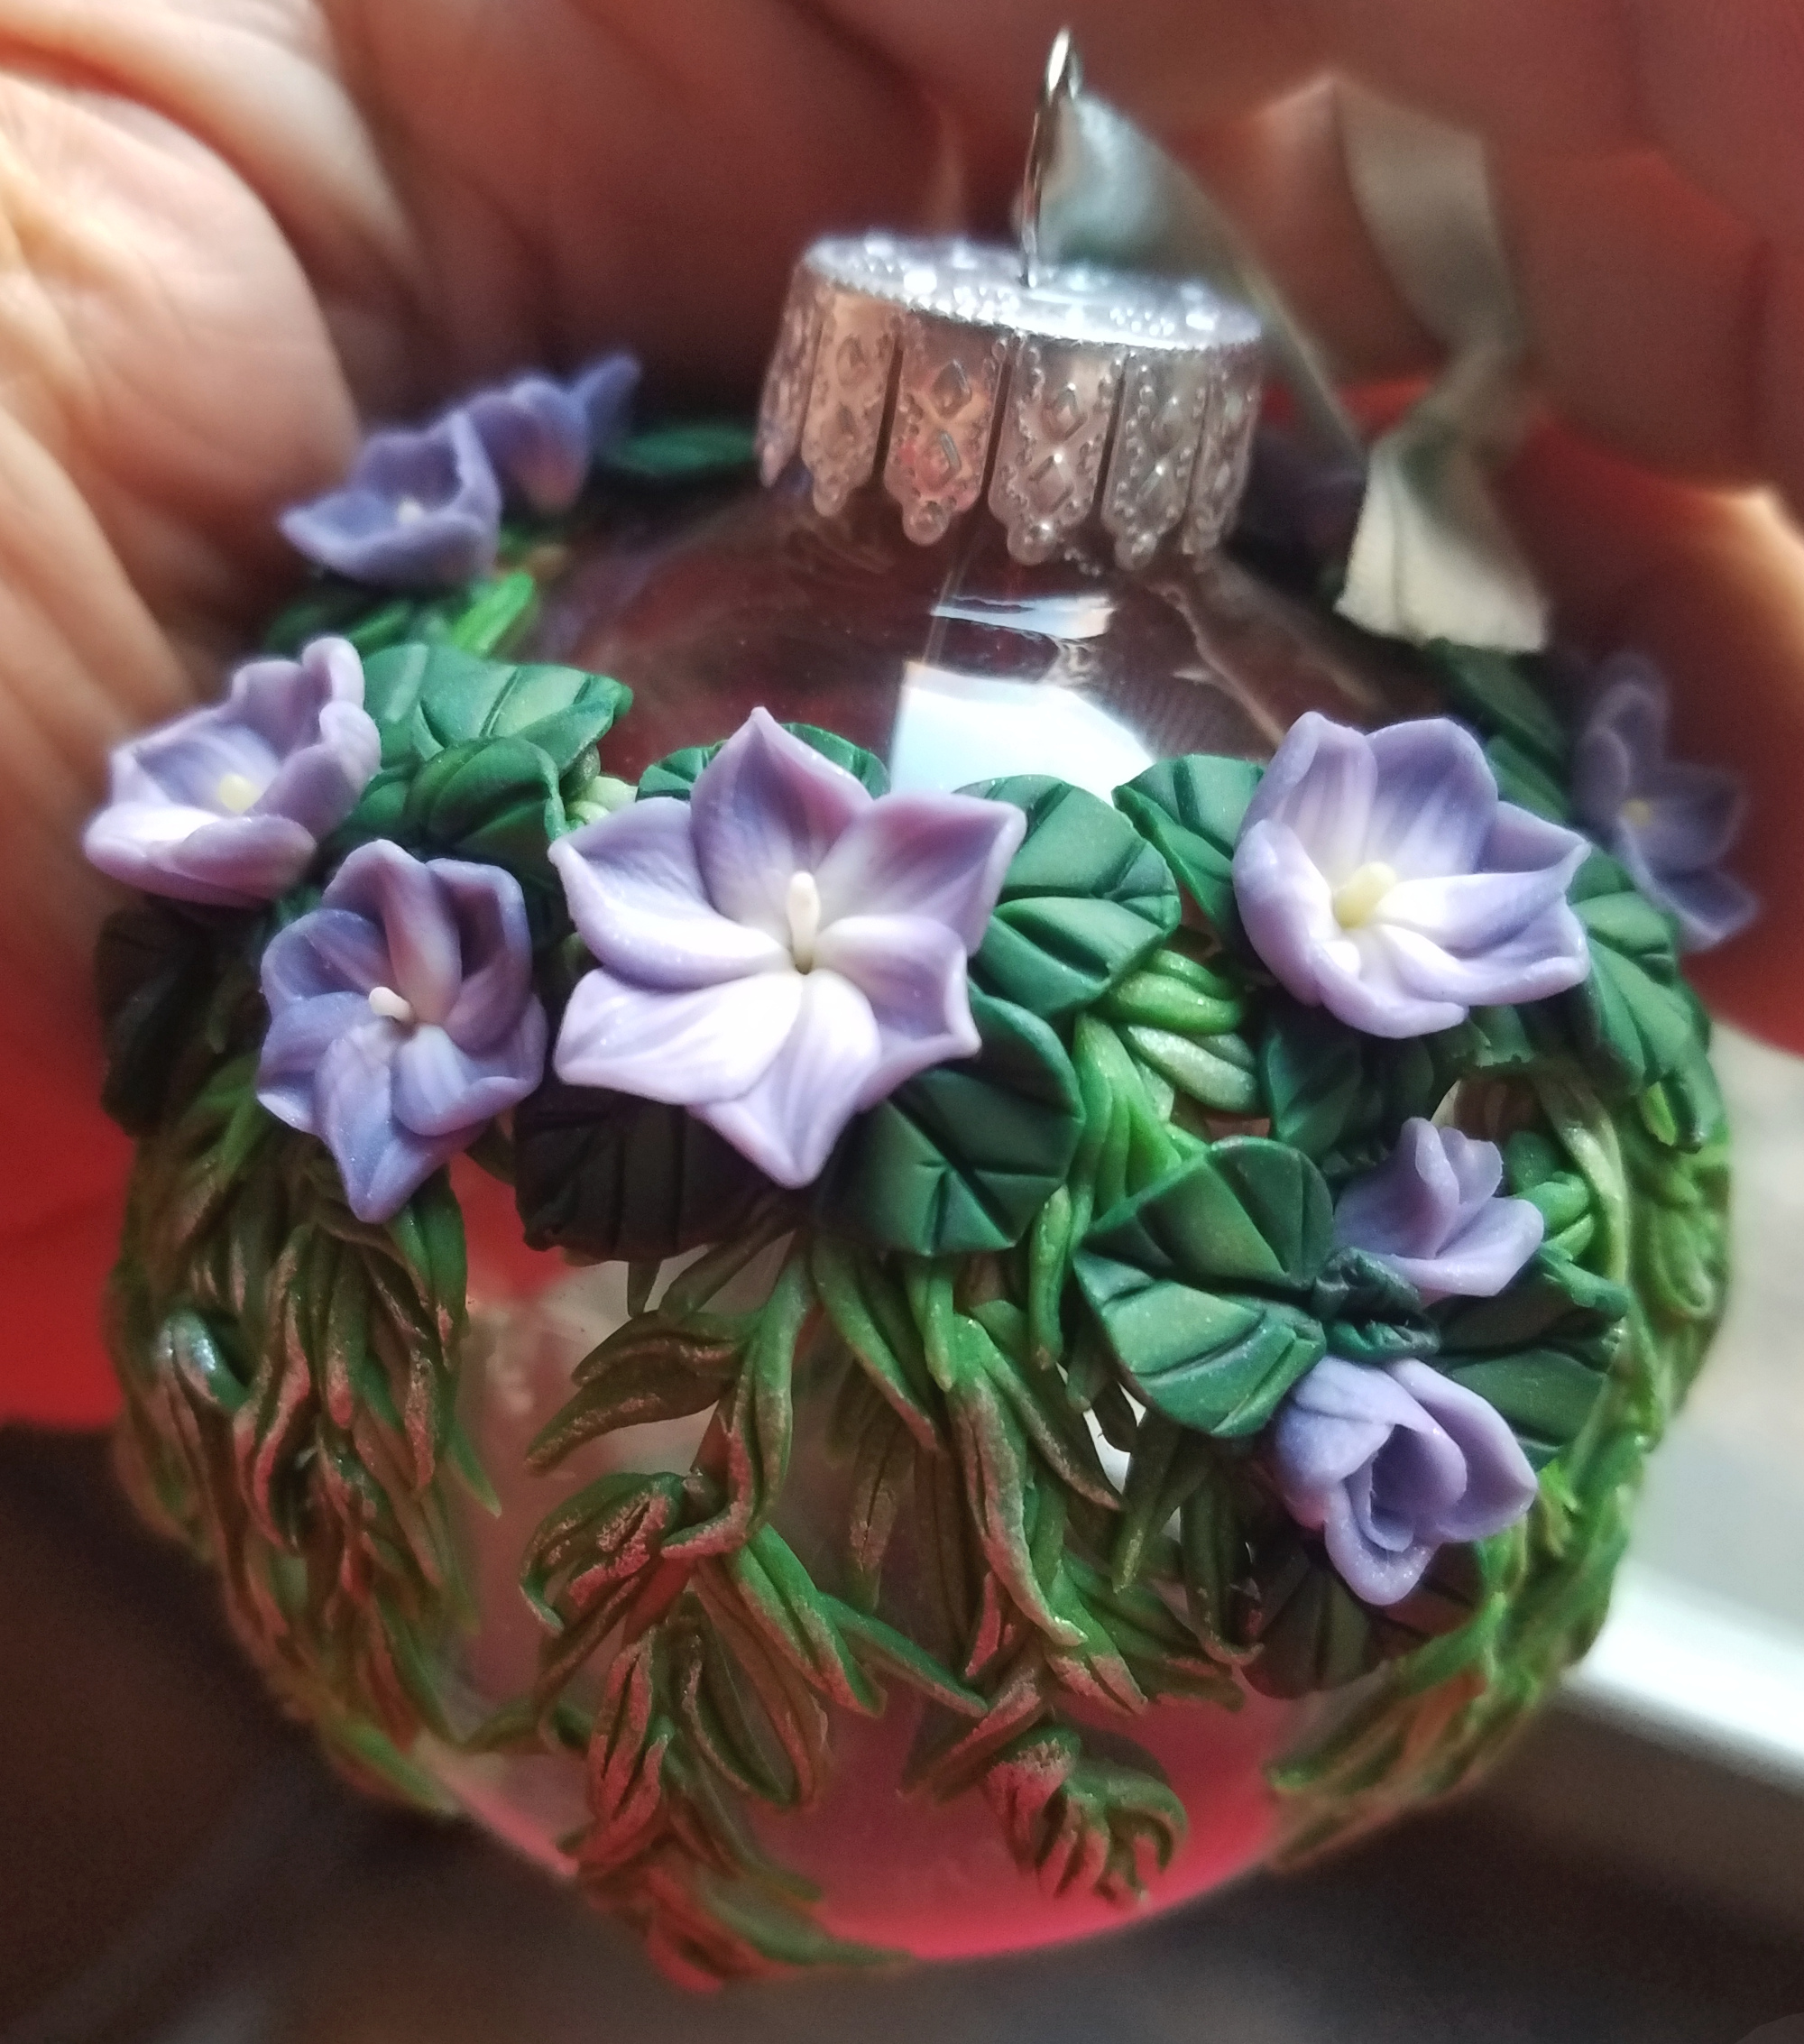 Lavender Tempest and Willow leaves